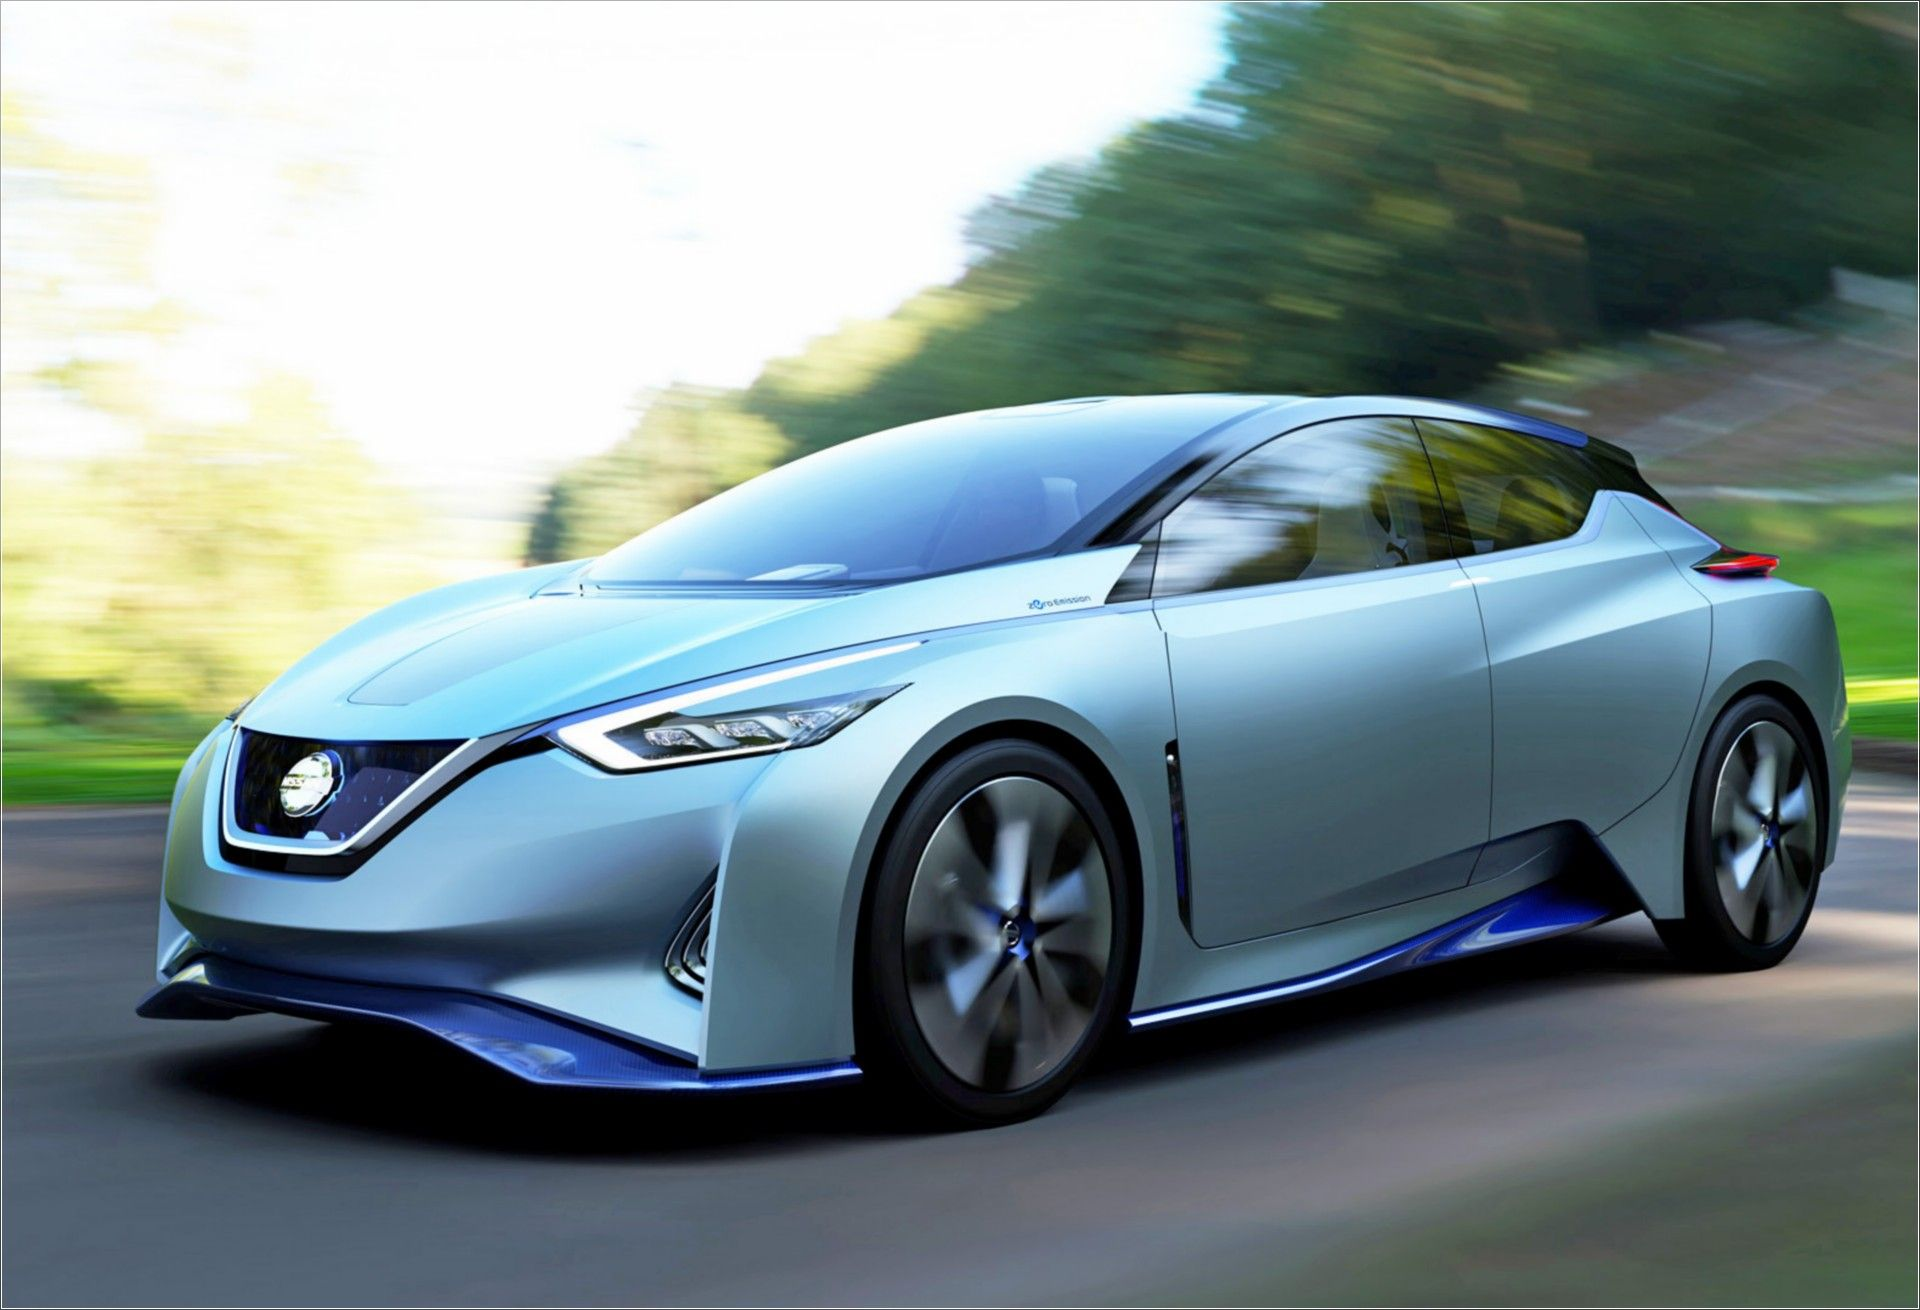 80 Most Amazing Electric Car Designs in The World https